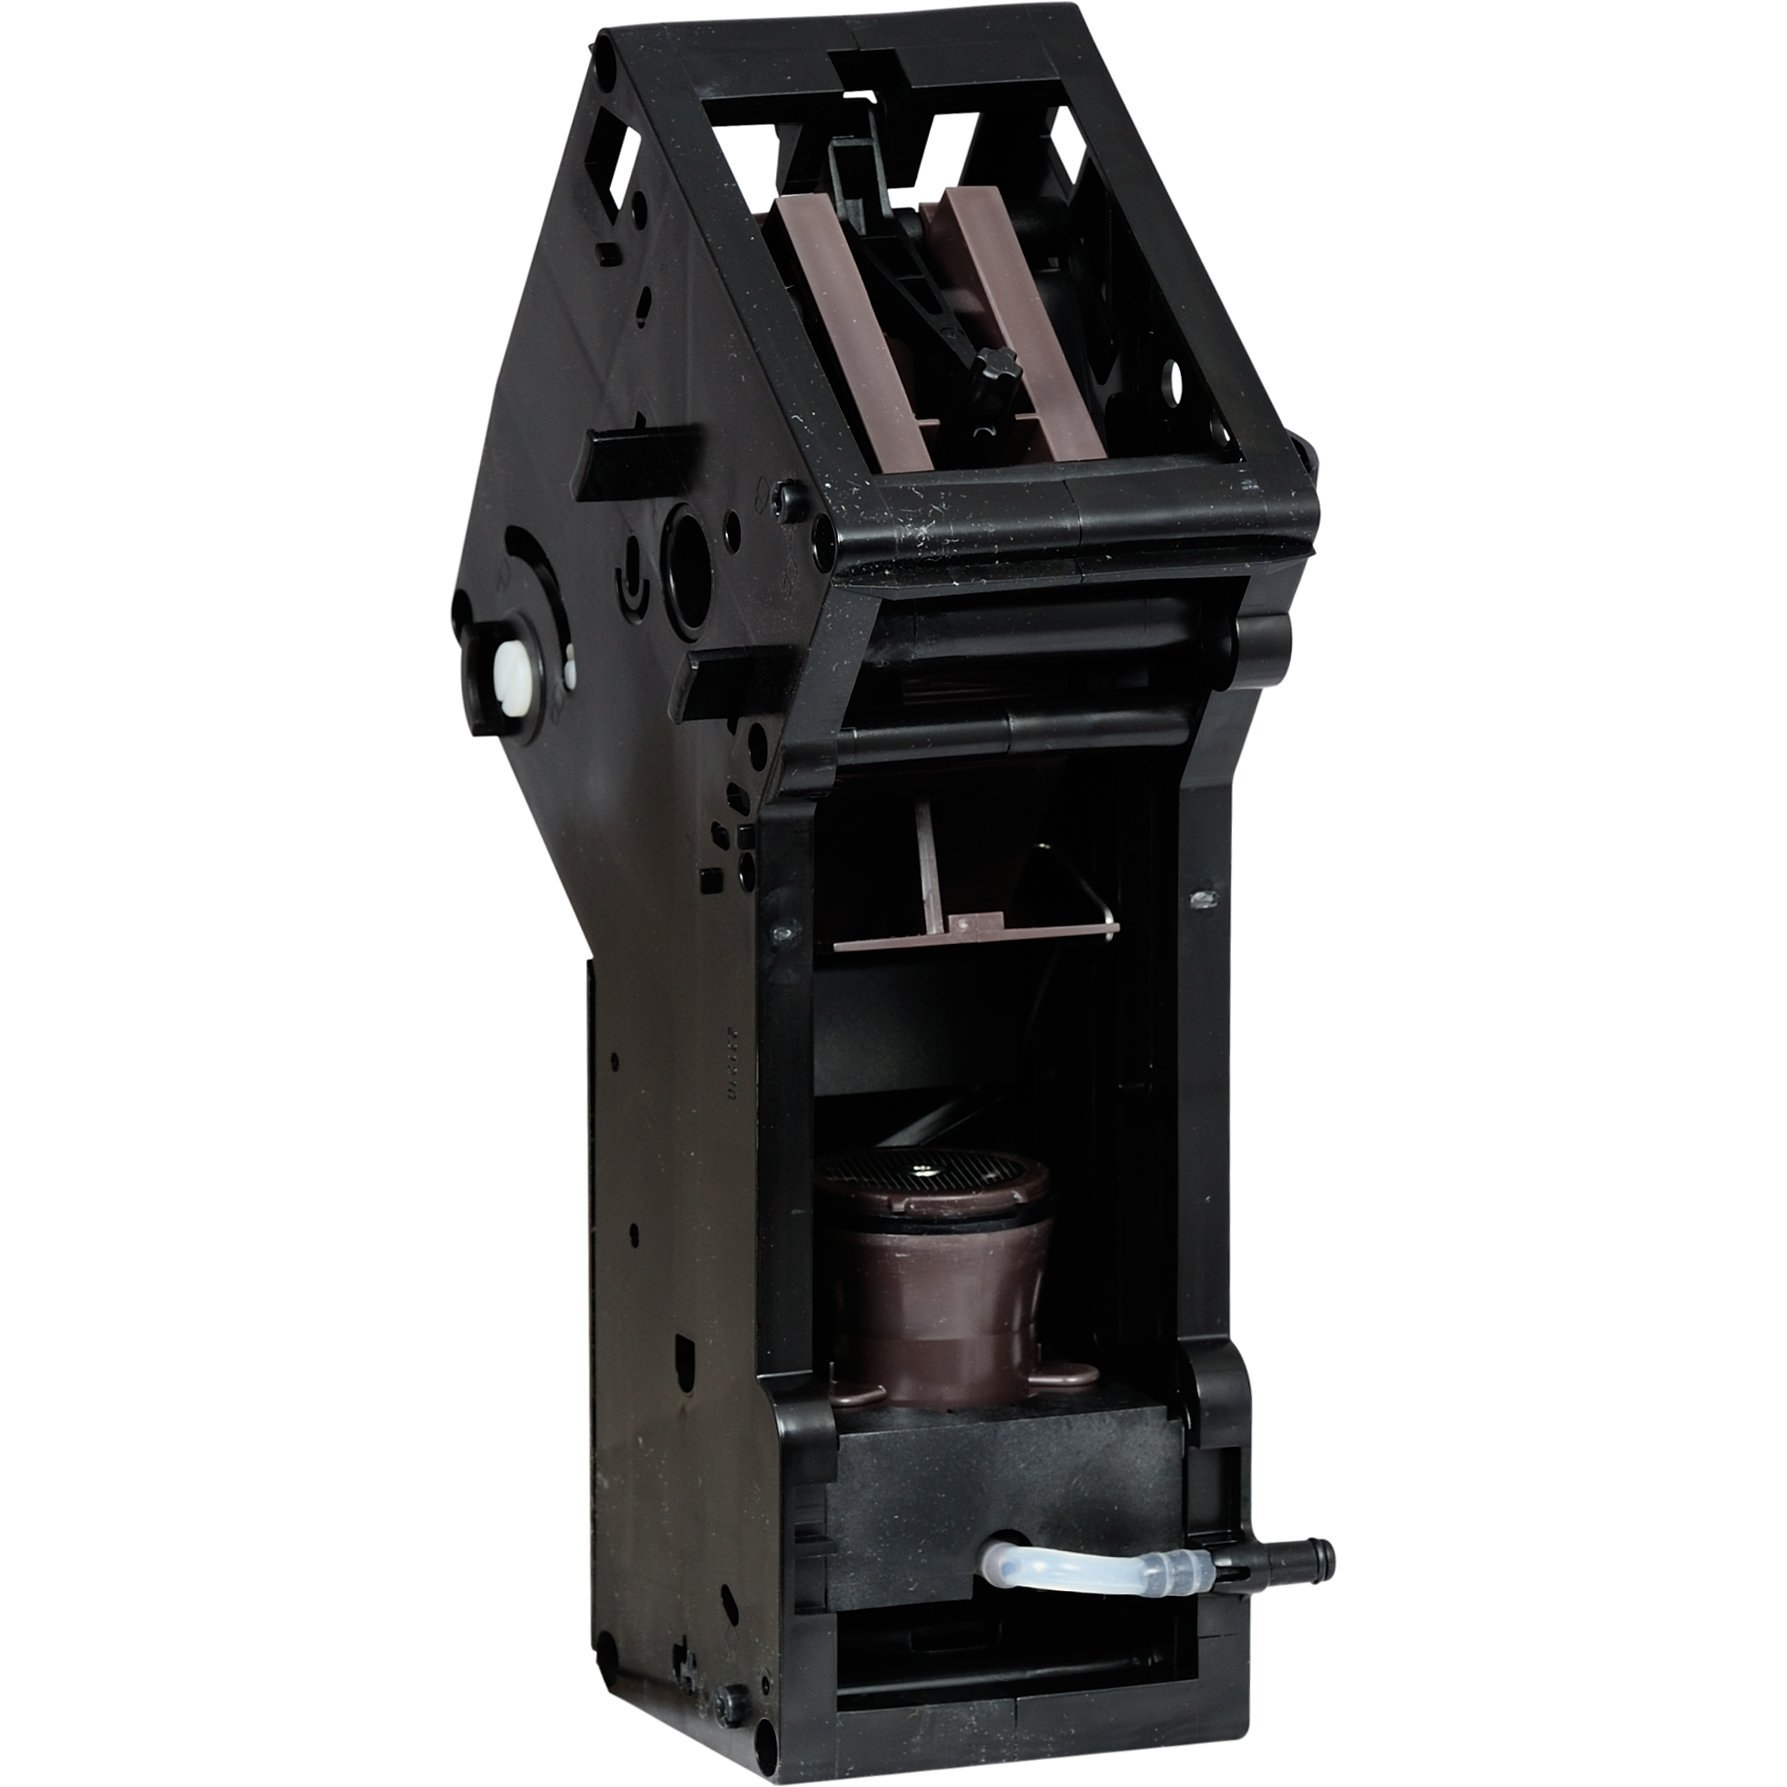 Brewing unit replacement for original number 648024